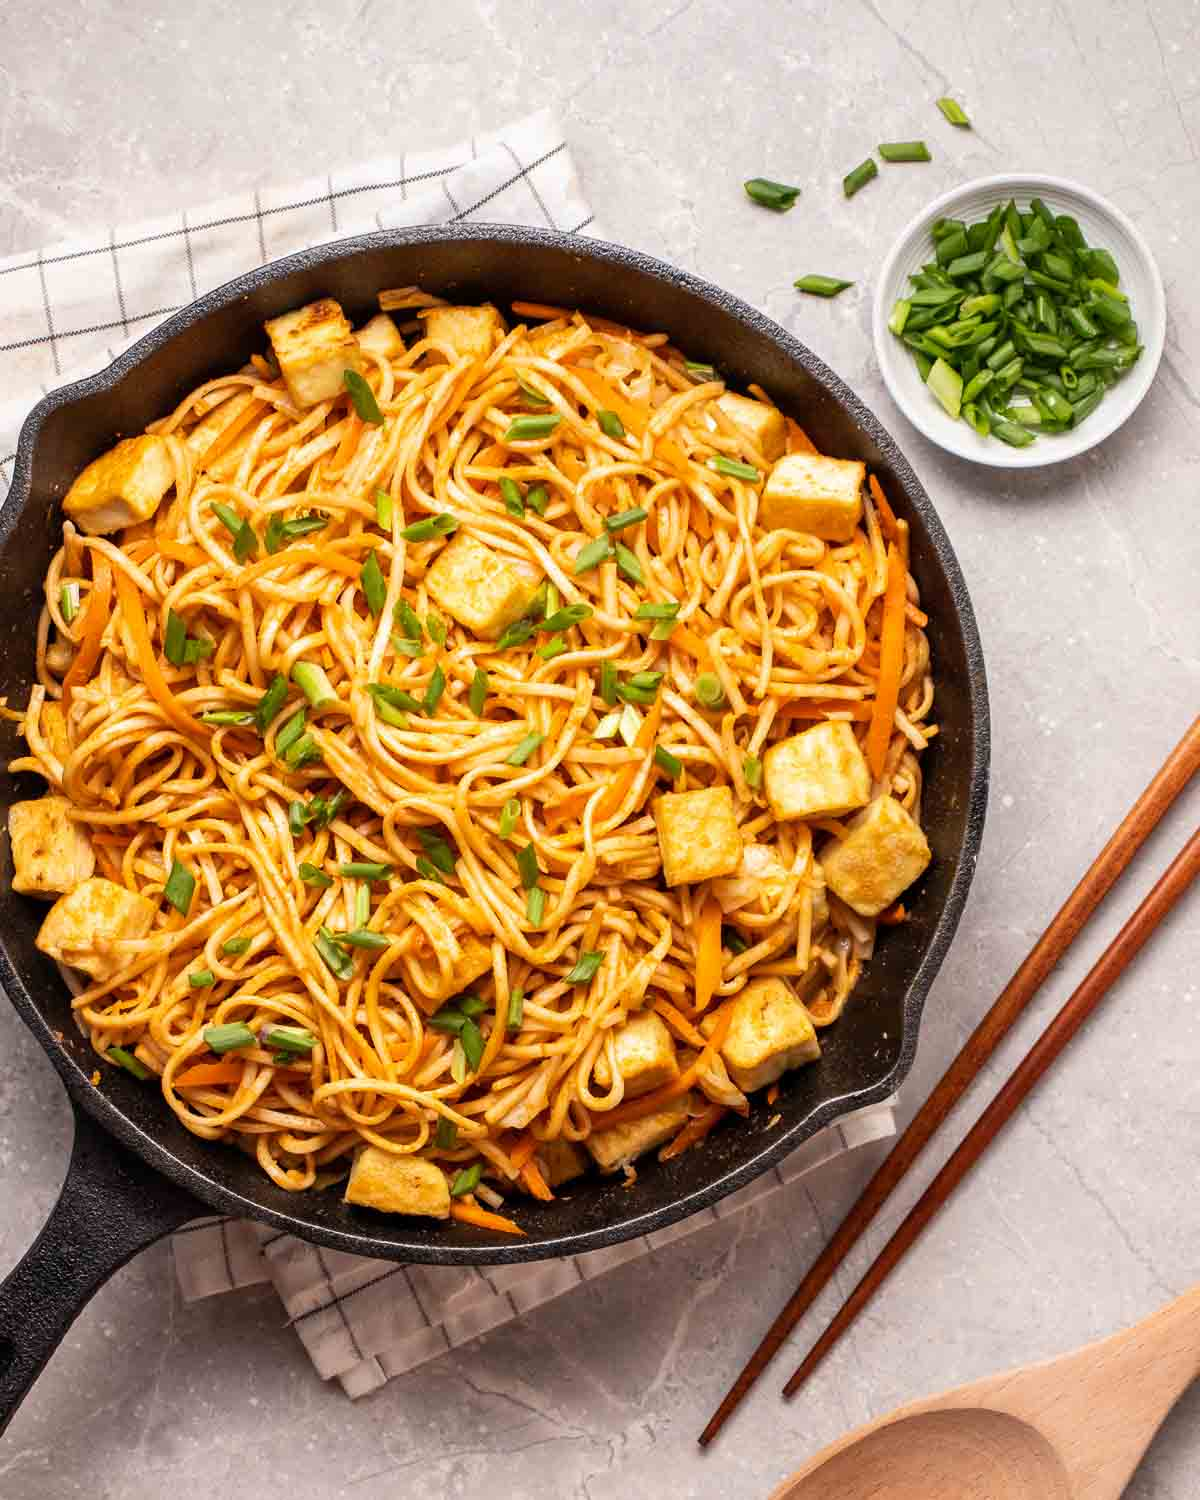 Peanut noodles in a cast iron skillet with dish of chopped skillet and pair of chopsticks beside.